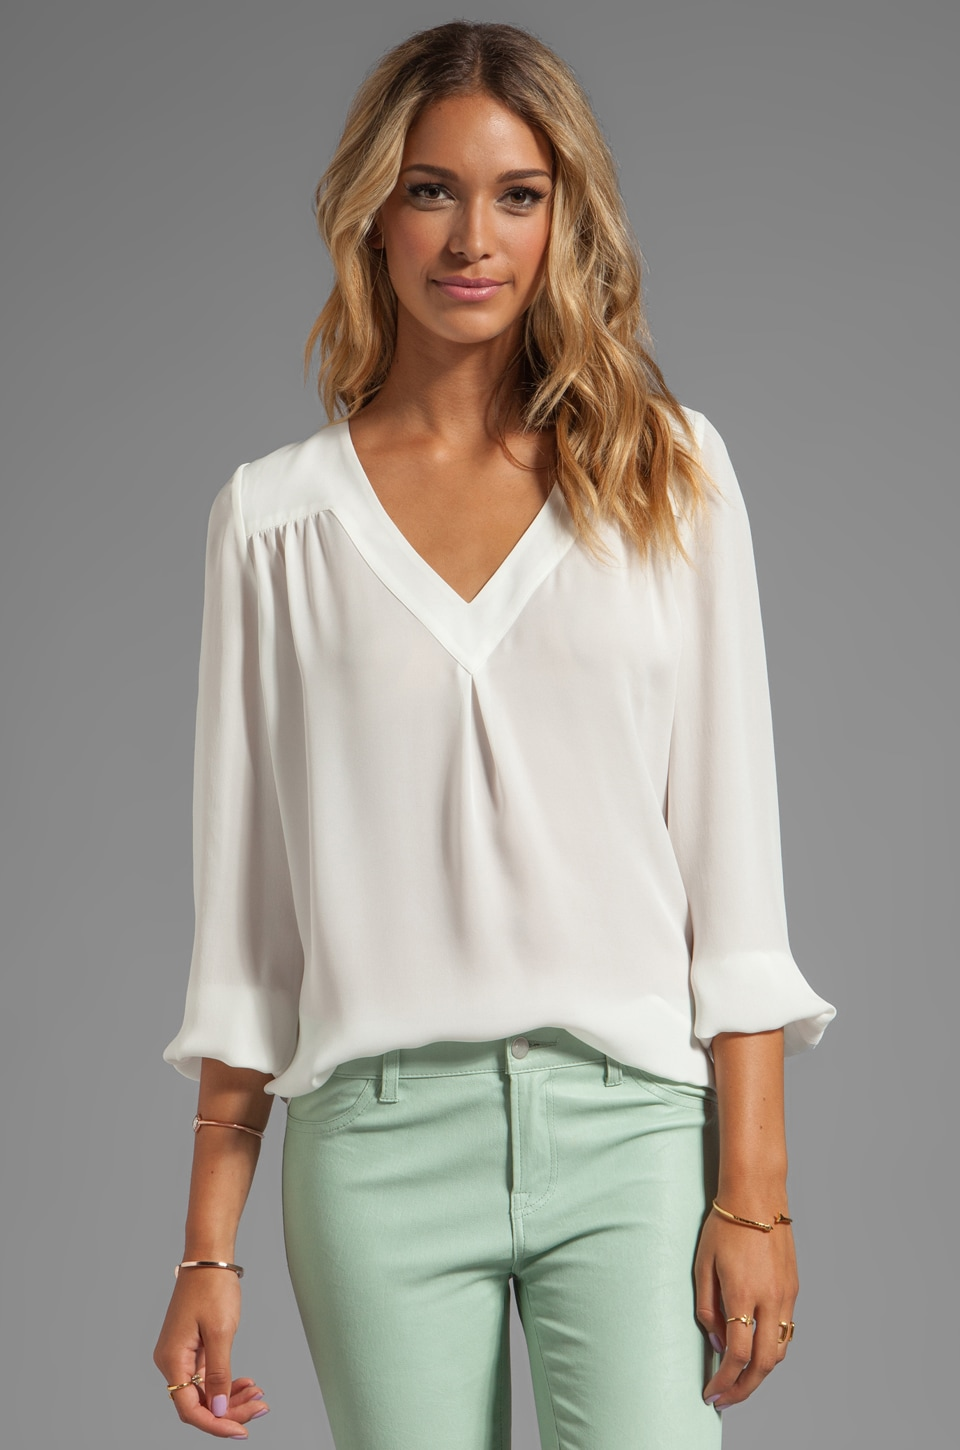 Joie Matte Silk Frenchie B Blouse in Porcelain